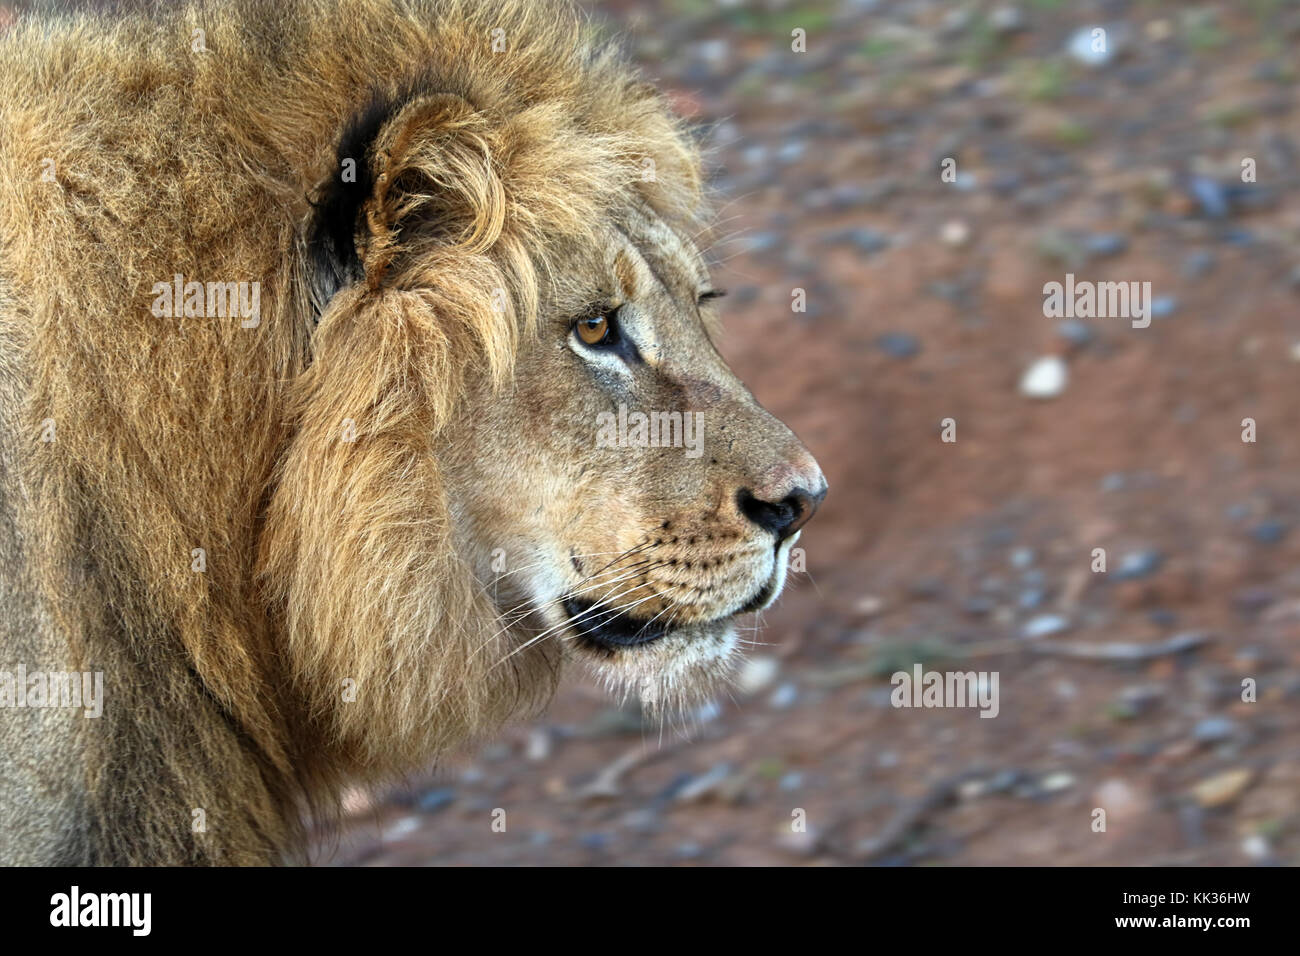 Close up of male lion in the Kruger National Park, South Africa - Stock Image